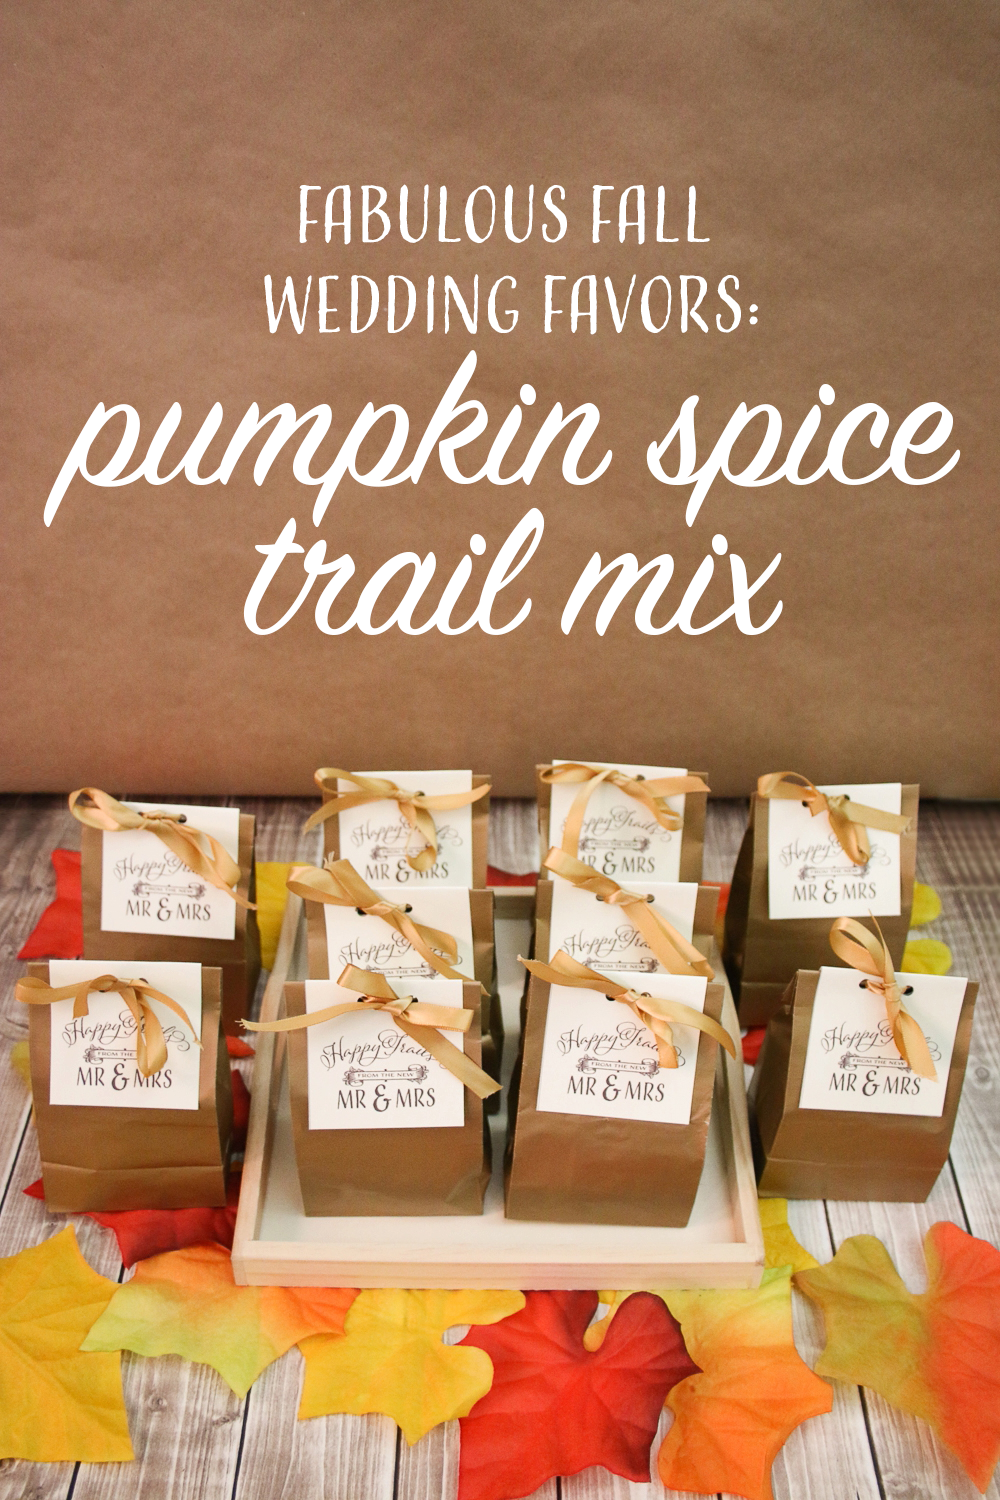 Pumpkin Spice Trail Mix Wedding Favors